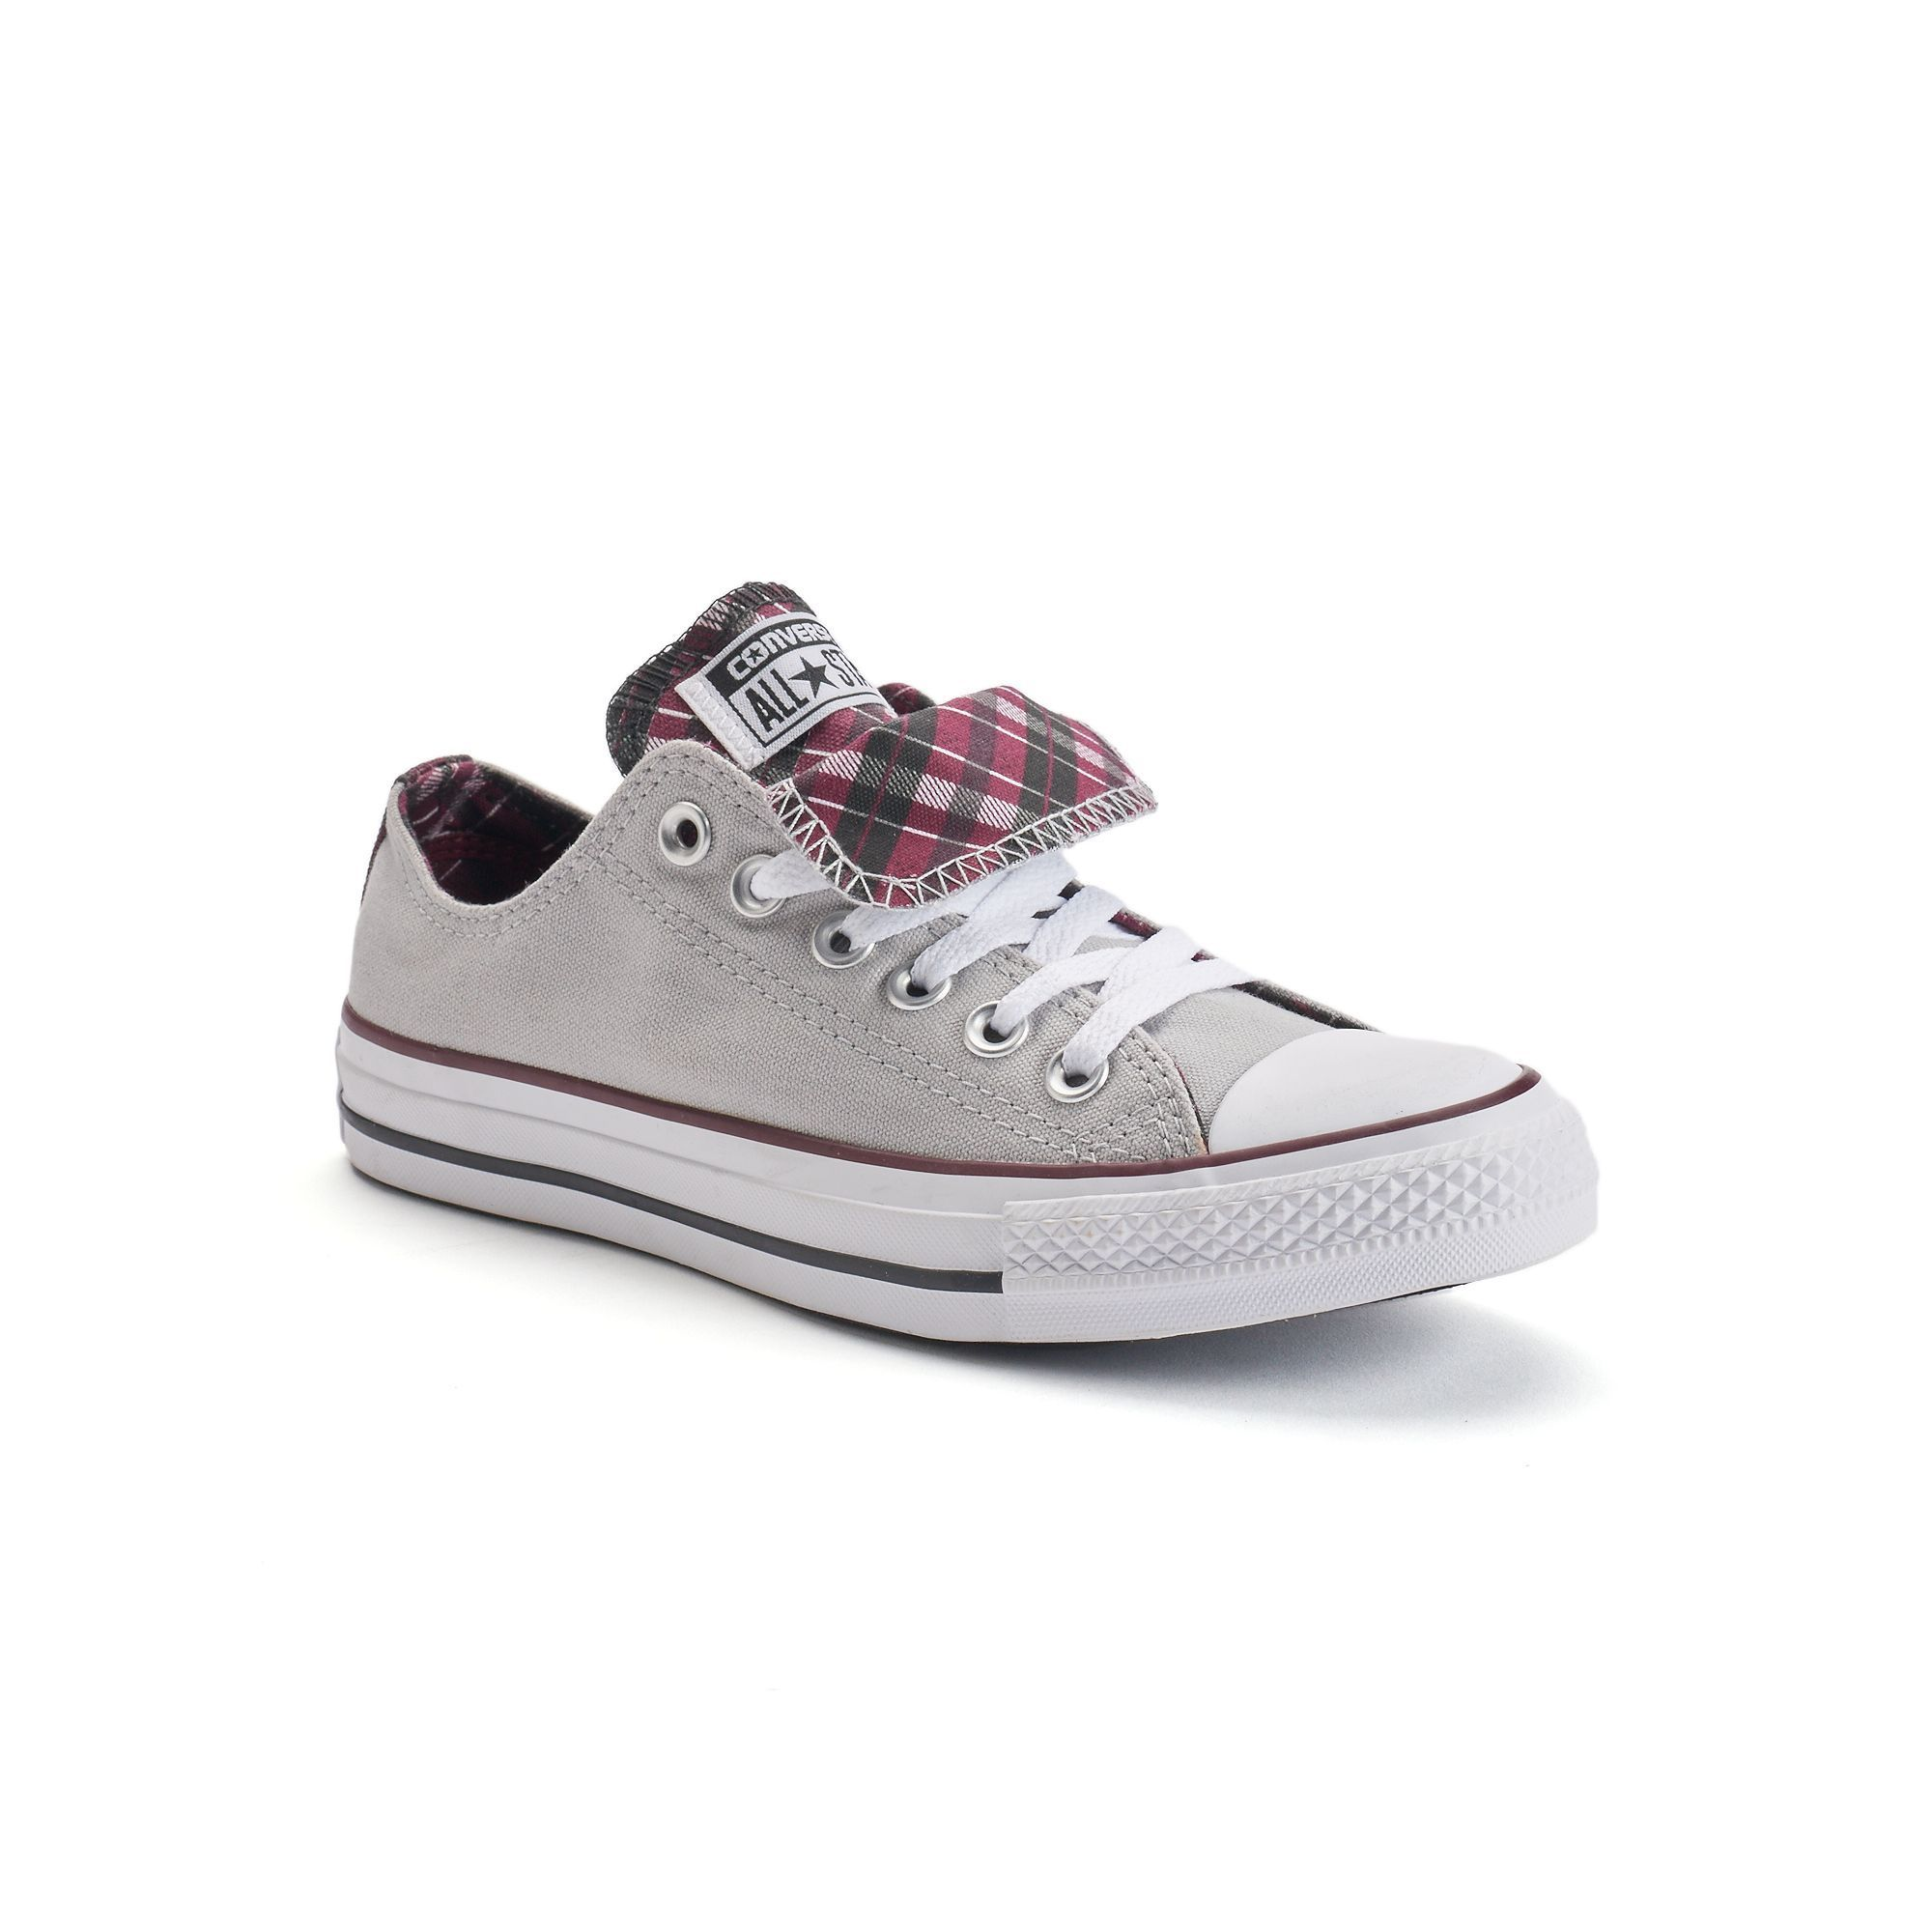 d68807022300 Women s Converse Chuck Taylor All Star Double-Tongue Plaid Shoes ...